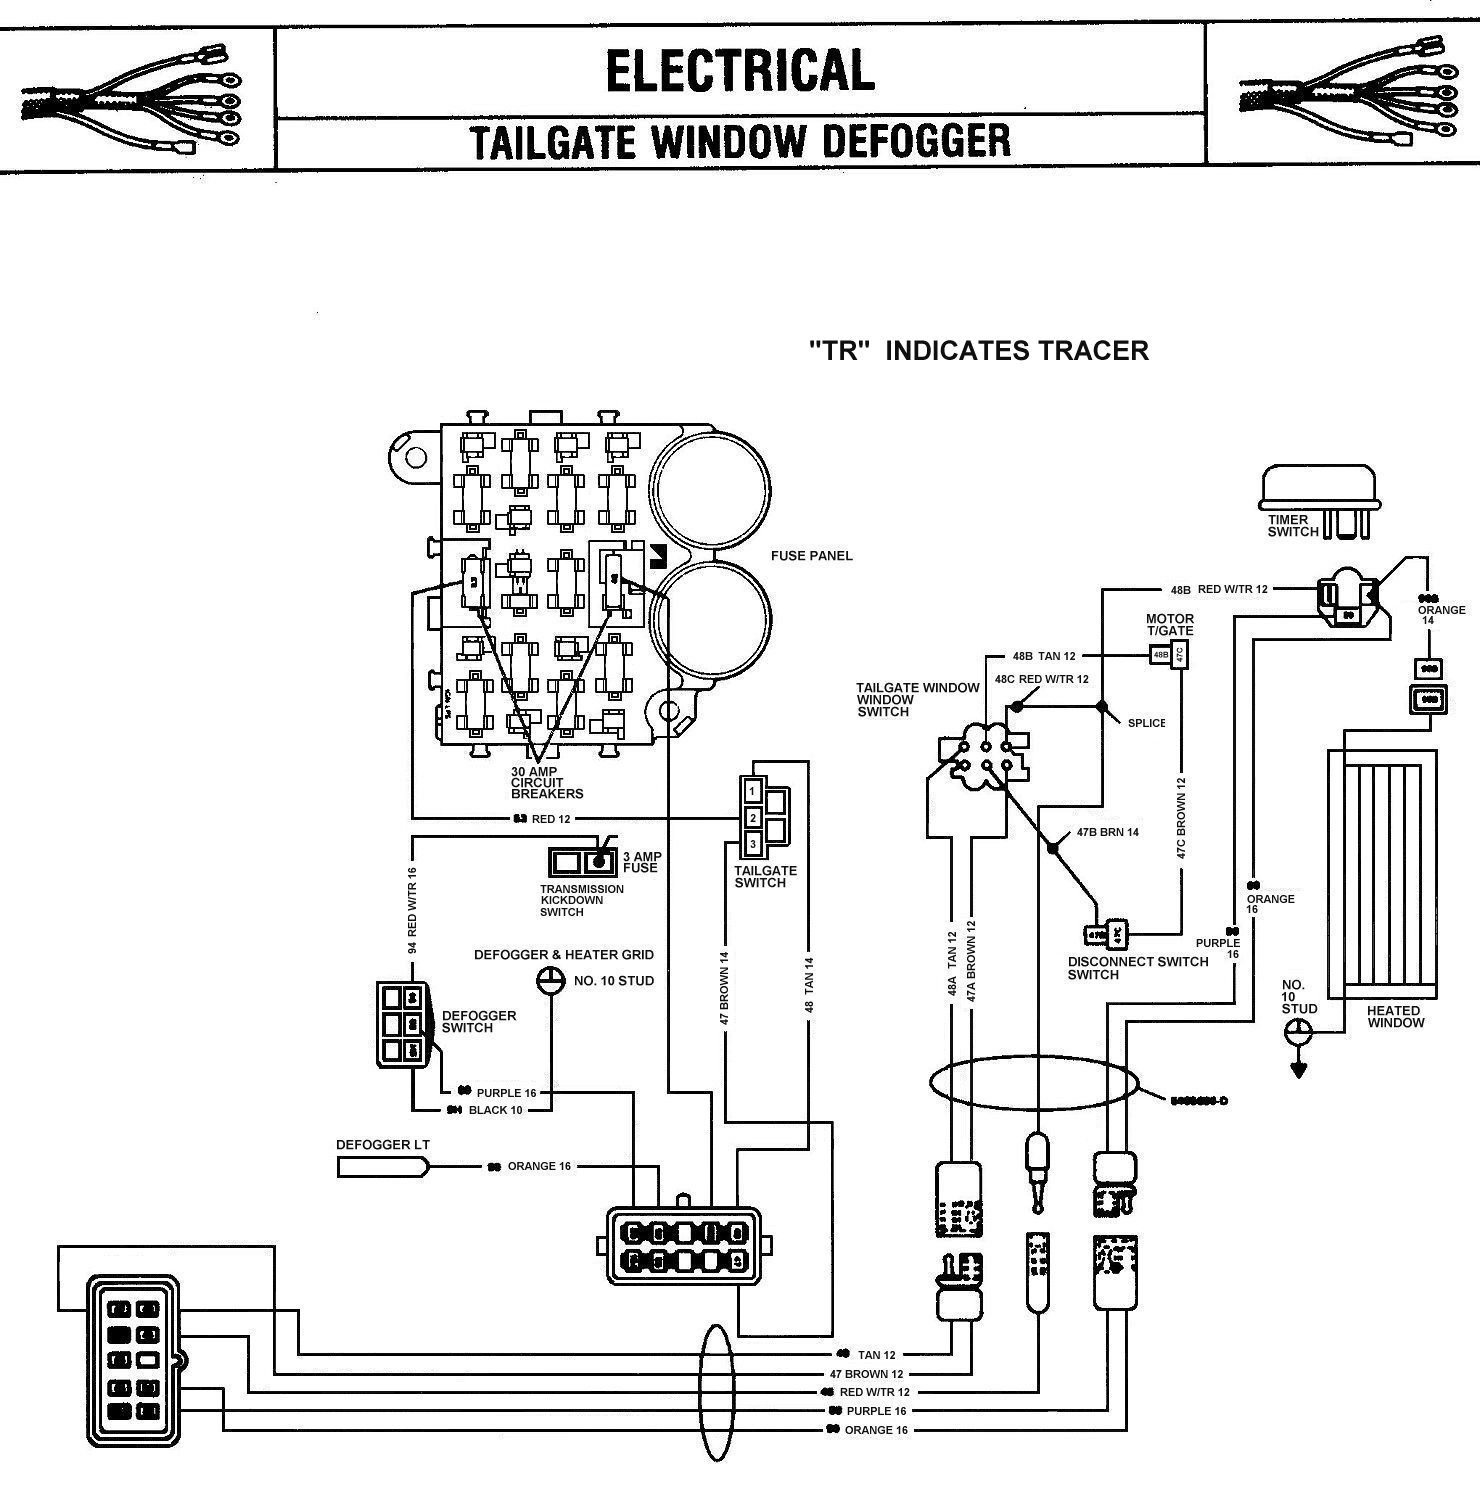 79 Jeep Heater Diagram Worksheet And Wiring 2000 Wrangler Ac Tom Oljeep Collins Fsj Page Rh Com Cj Schematic For 2006